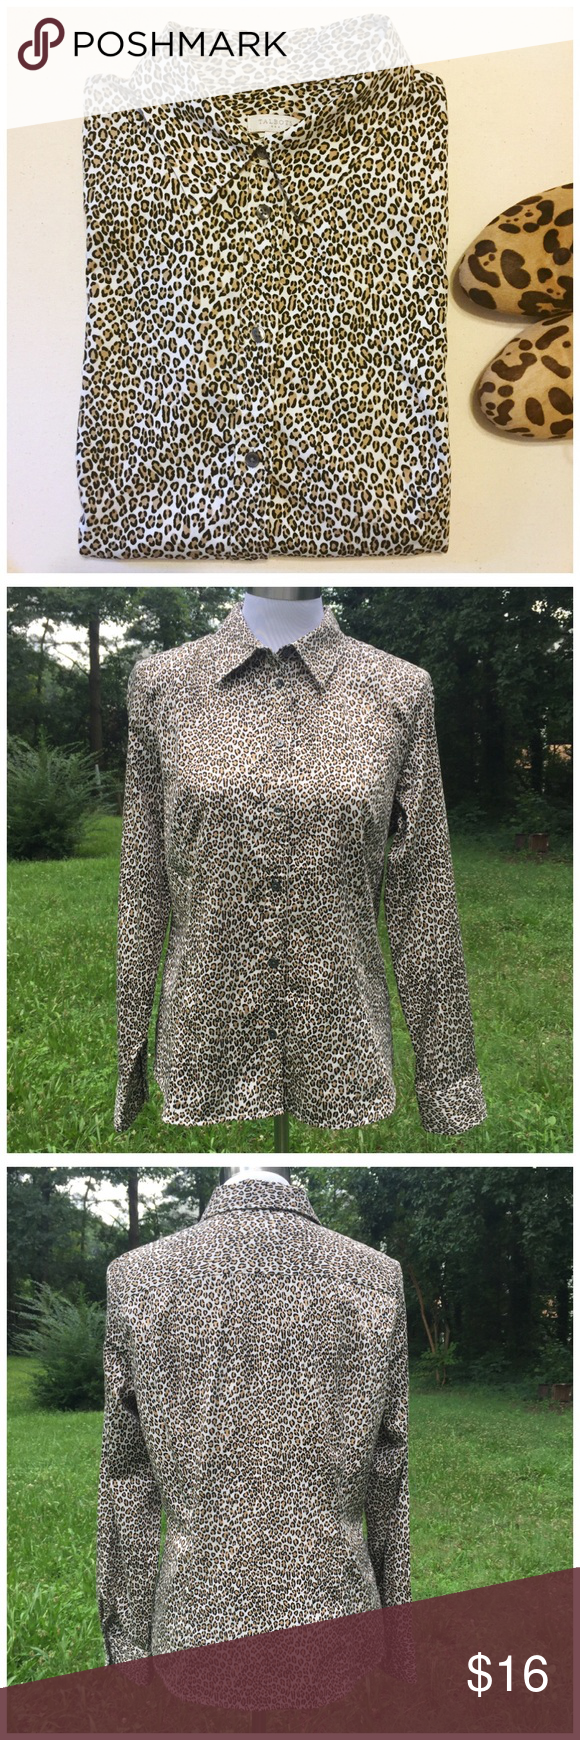 "Talbots Leopard Animal Print Fitted Buttondown - M Talbots Leopard Animal Print Fitted Buttondown --- medium --- excellent pre-loved condition, no signs of wear --- 98% cotton 2% Lycra spandex --- fabric has a small amount of stretch --- 20.5"" bust --- 25"" length --- thank you for visiting my boutique, please feel free to ask any questions ❤️ Talbots Tops Button Down Shirts"